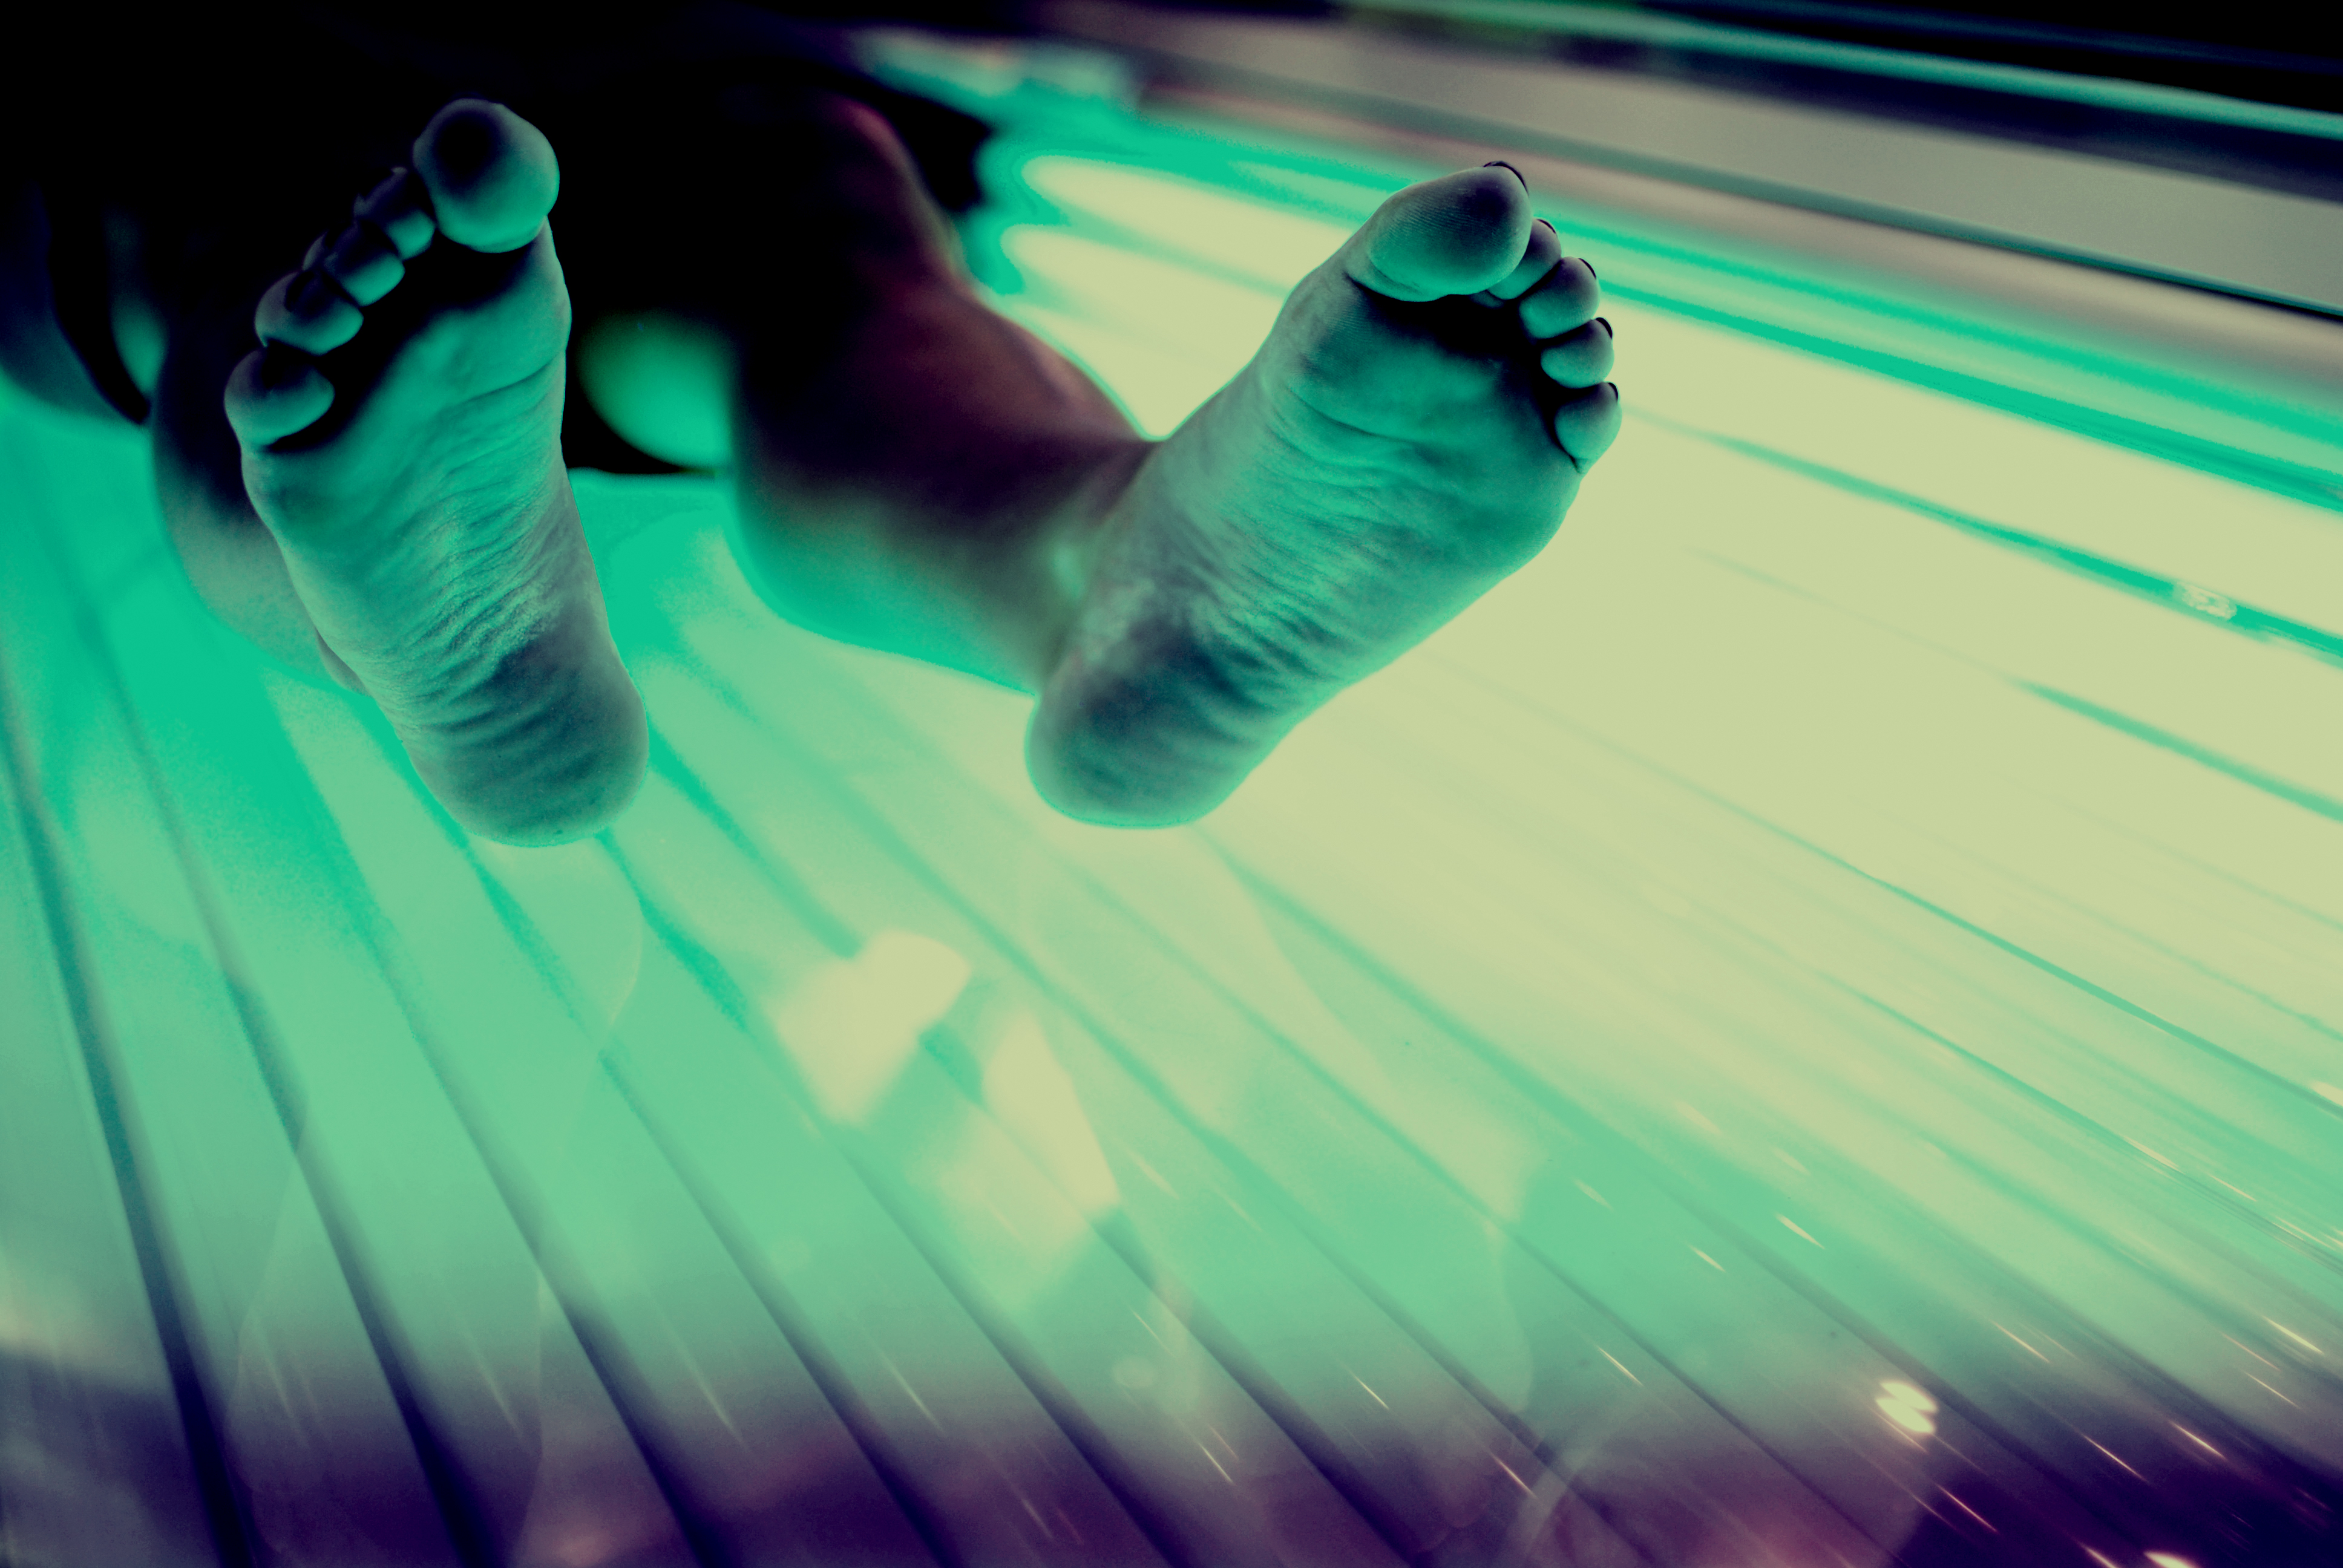 Despite skin cancer millions use tanning beds   EmaxHealth